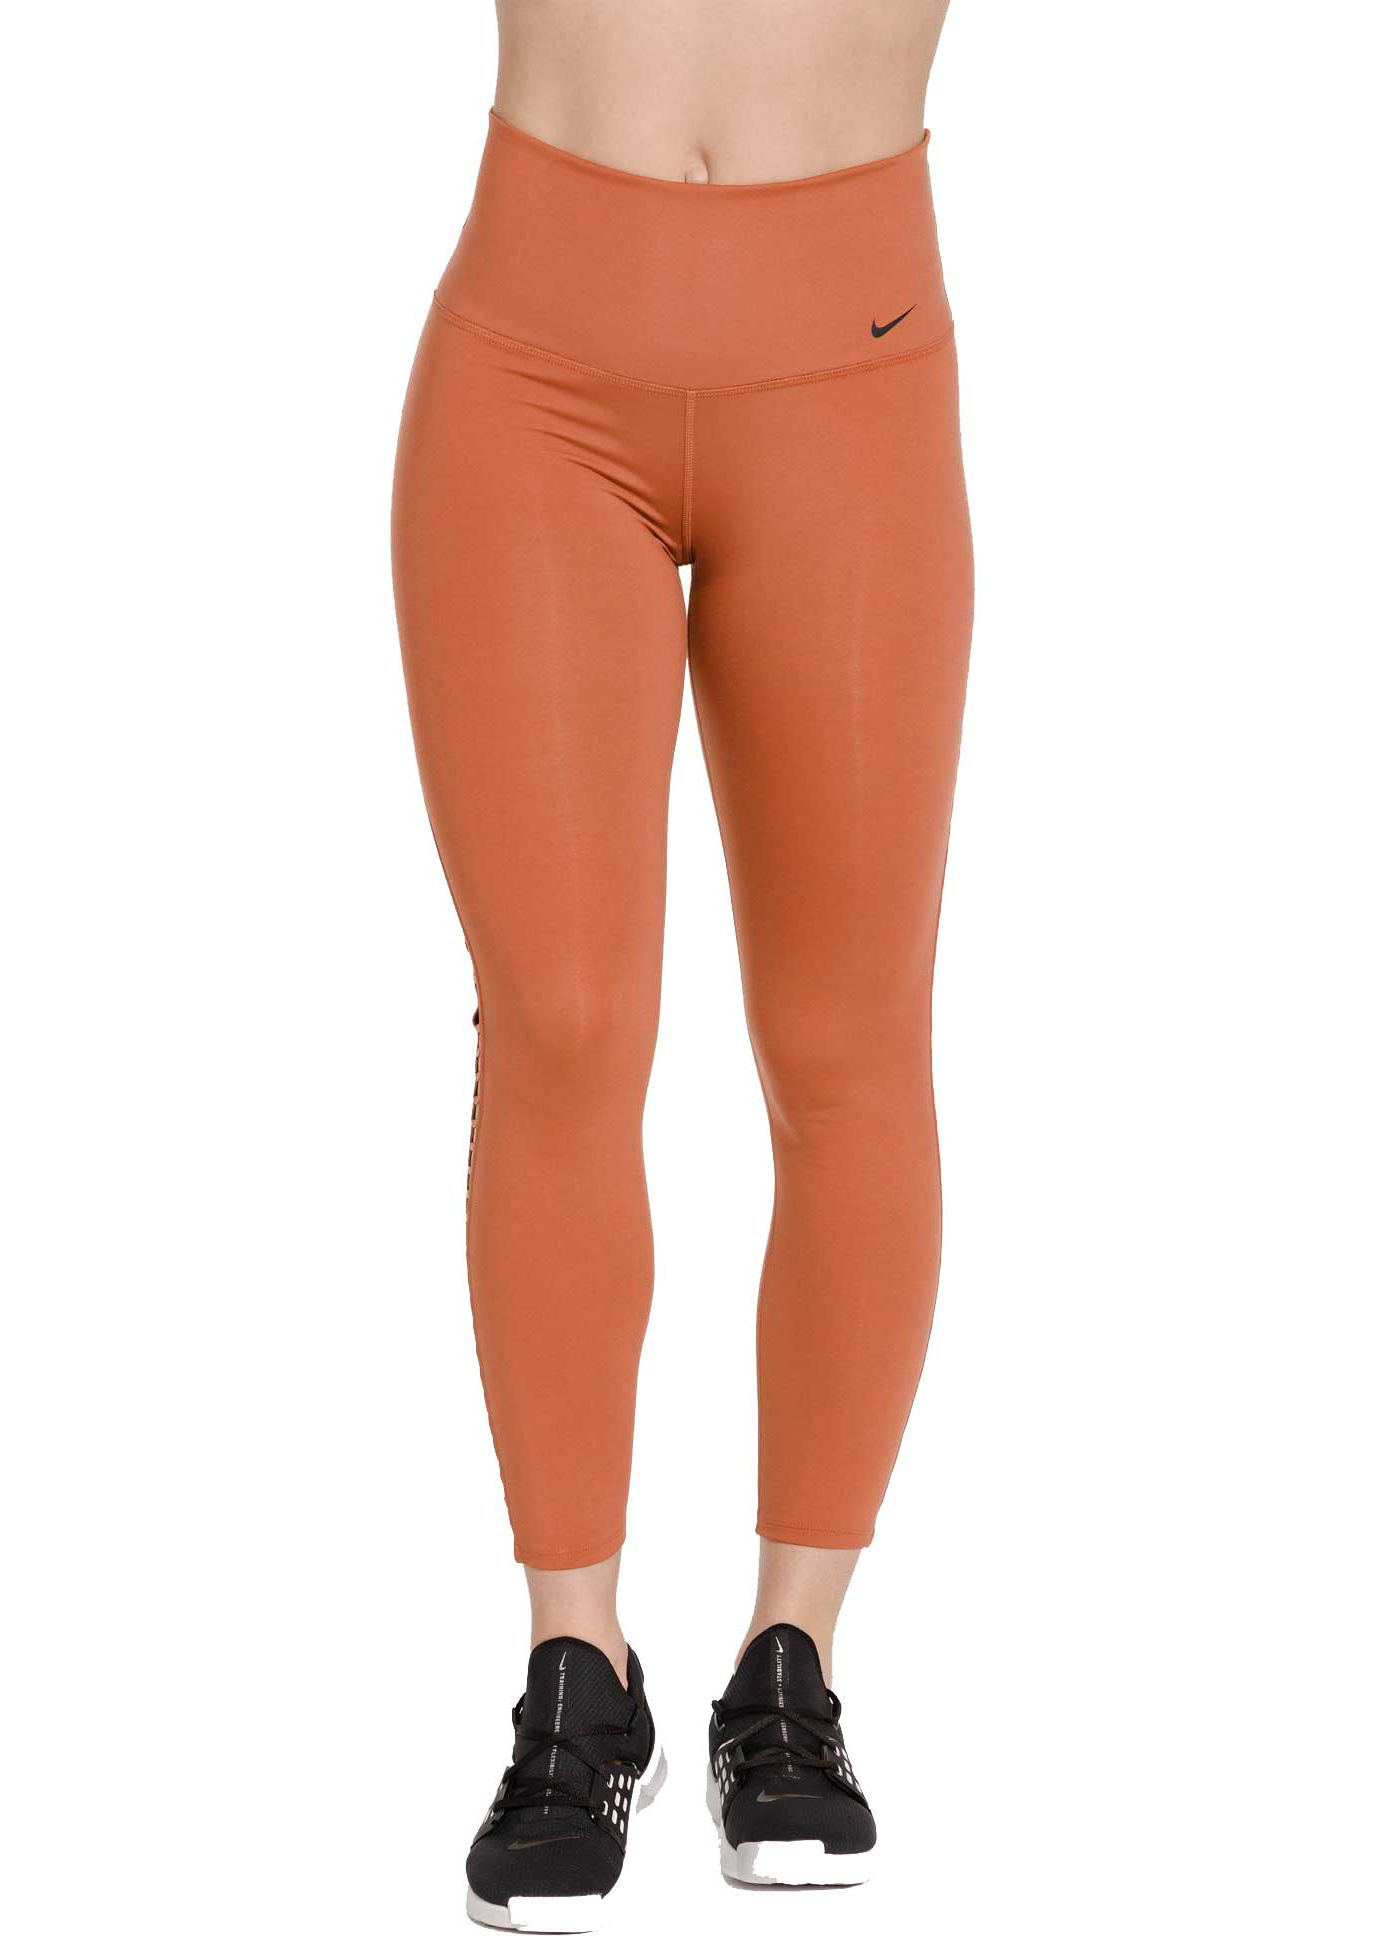 Women's Nike Dri-FIT Power 7/8 Training Legging